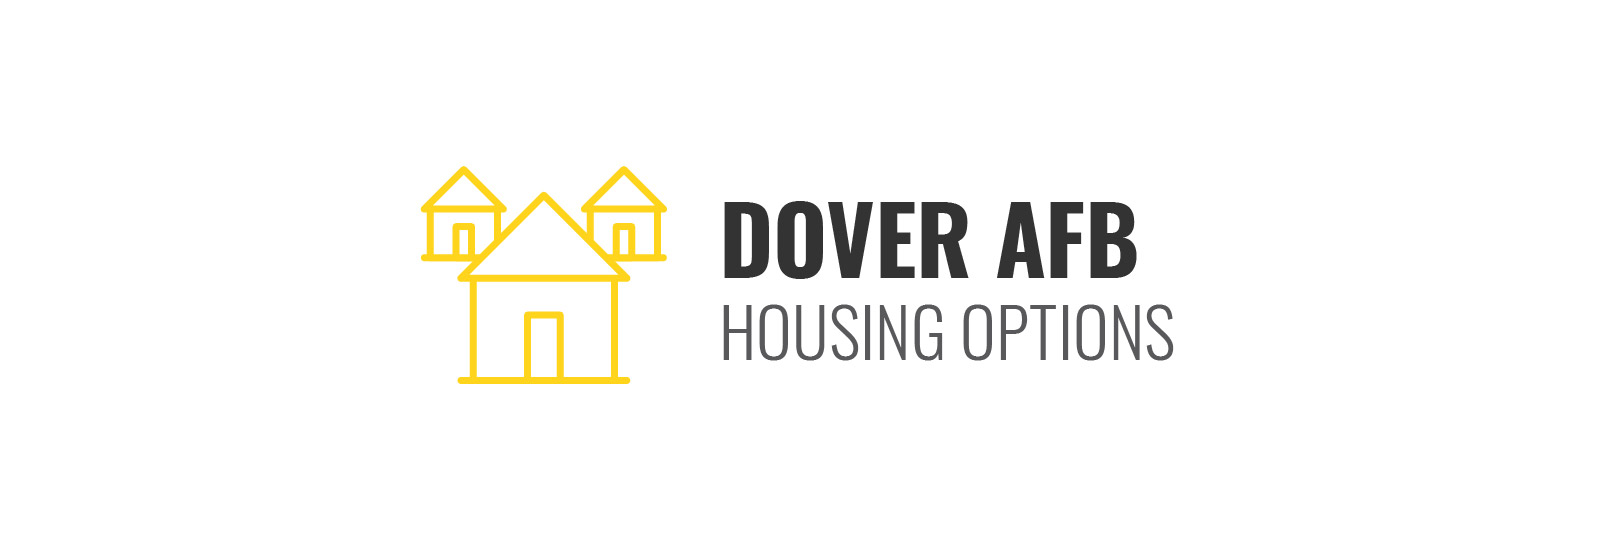 Dover AFB Housing Options